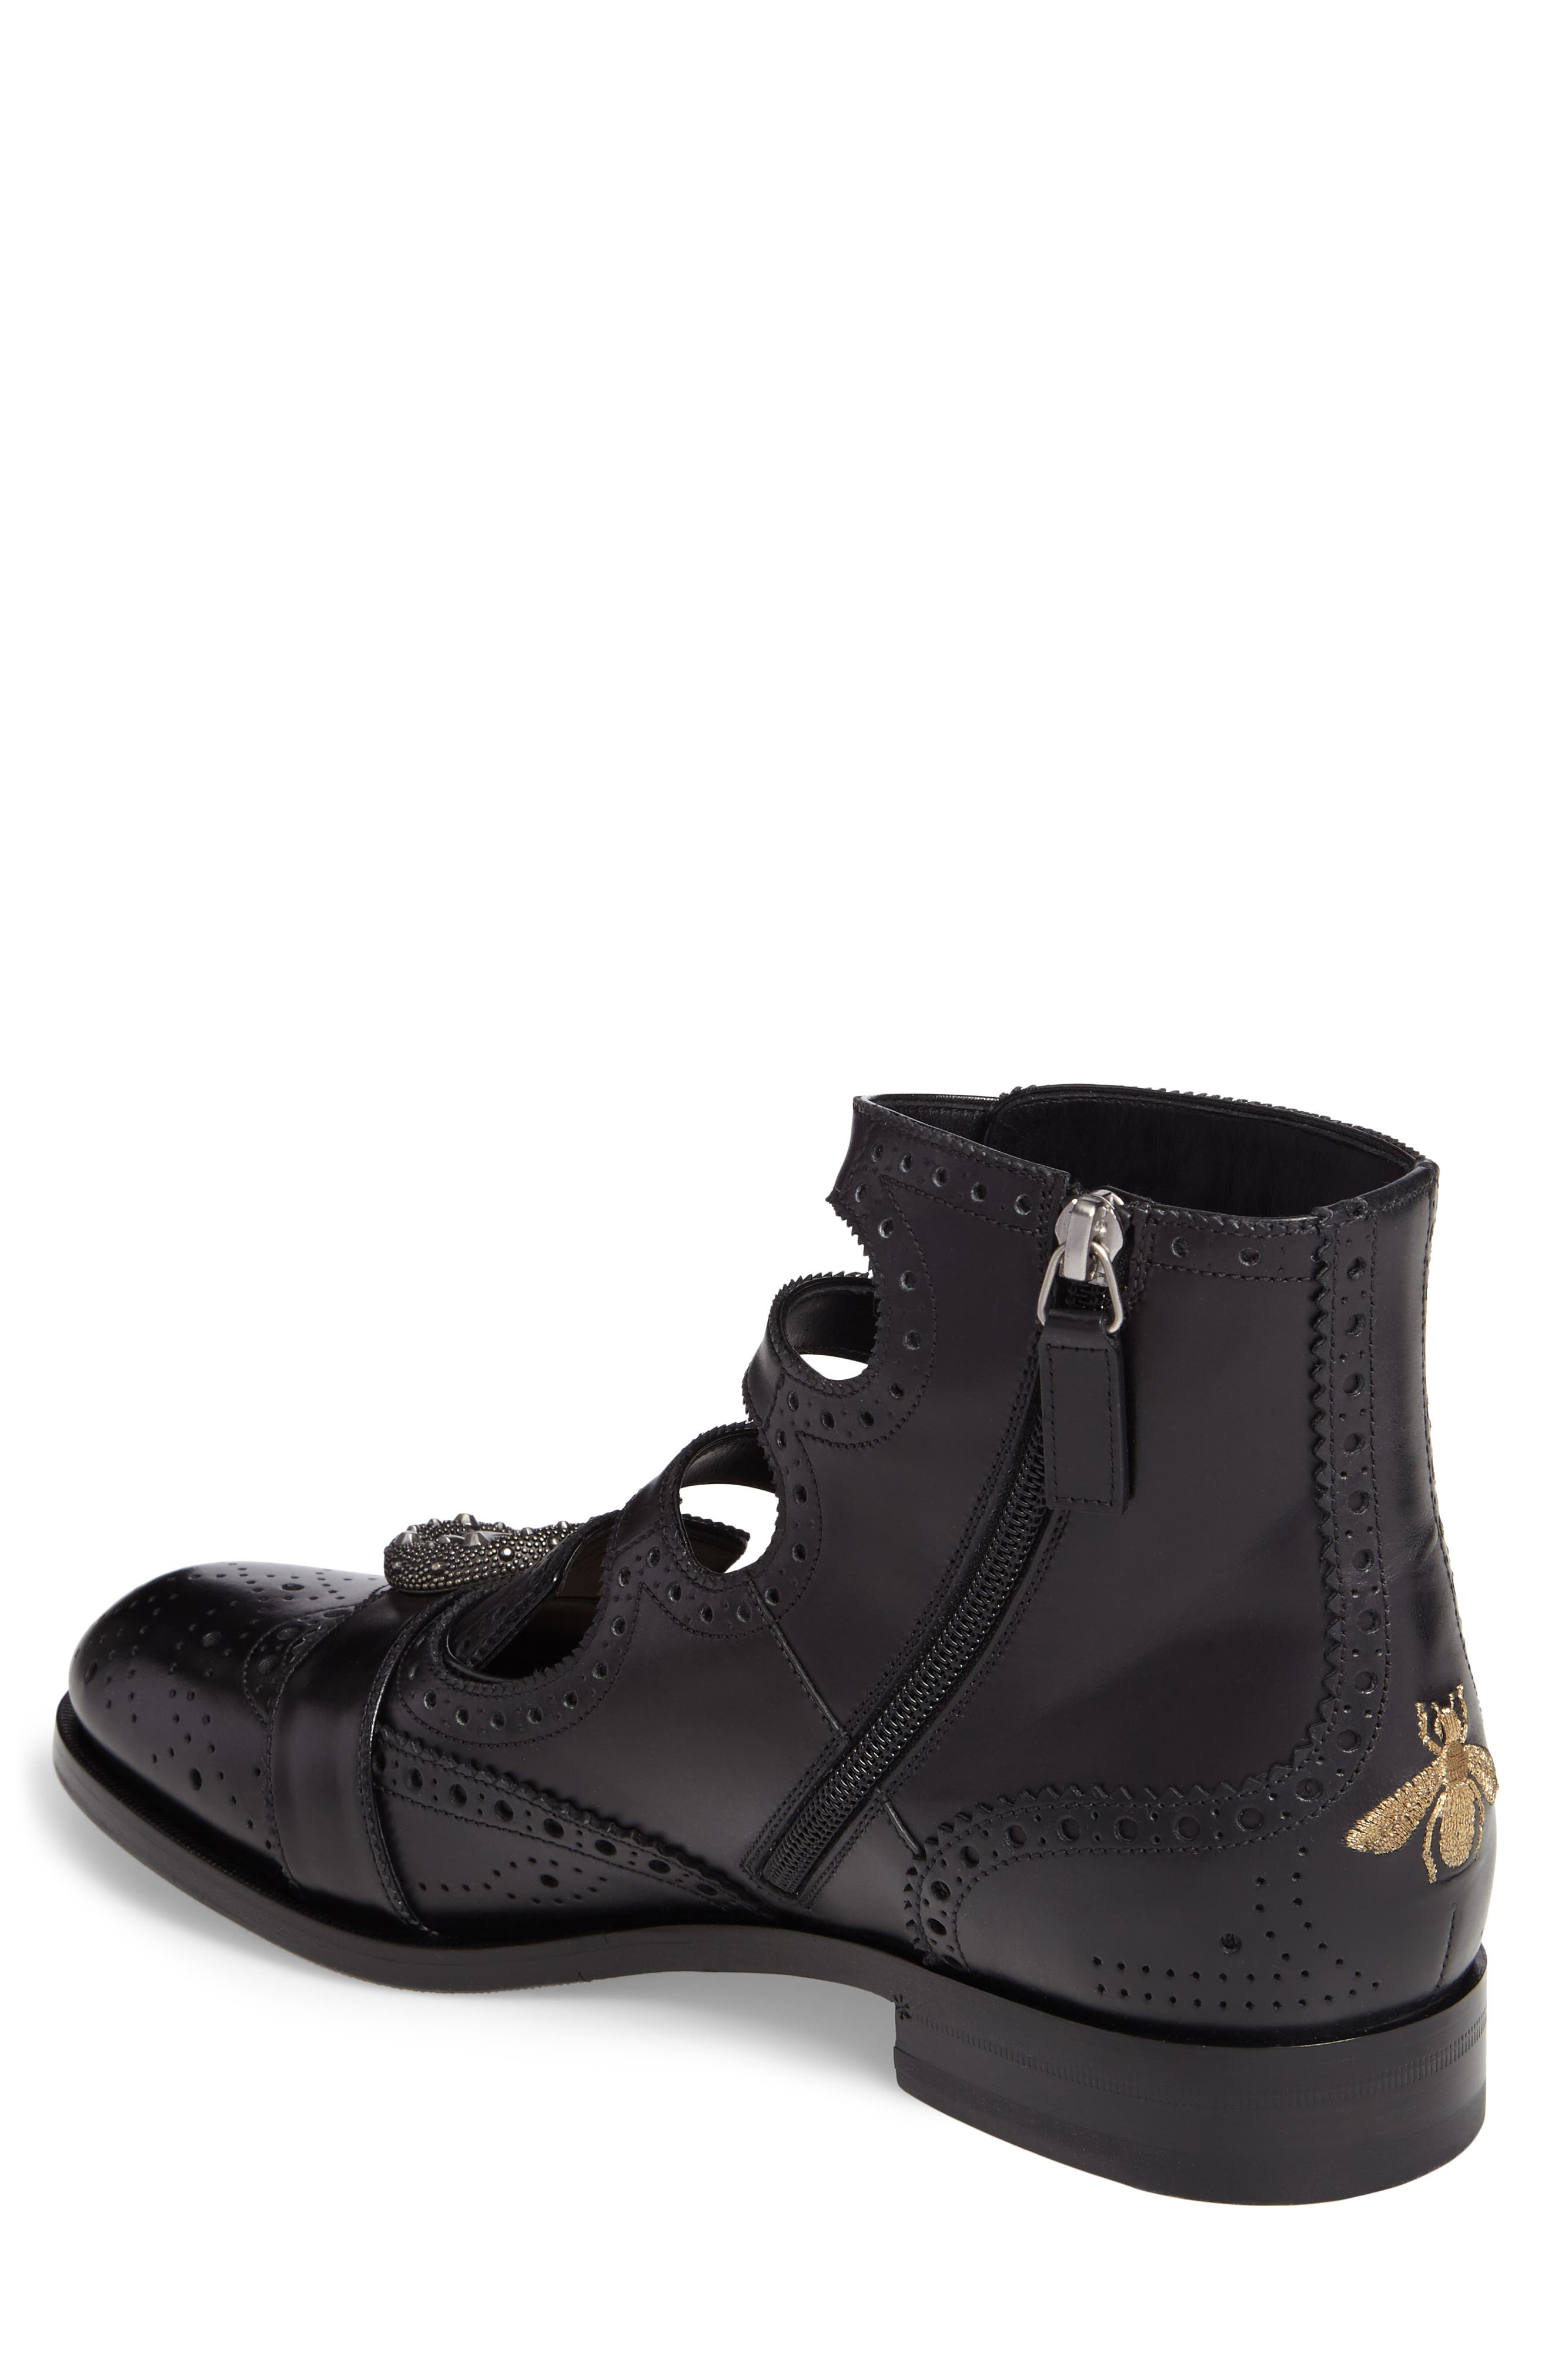 Queercore Boot,                             Alternate thumbnail 2, color,                             Nero Leather